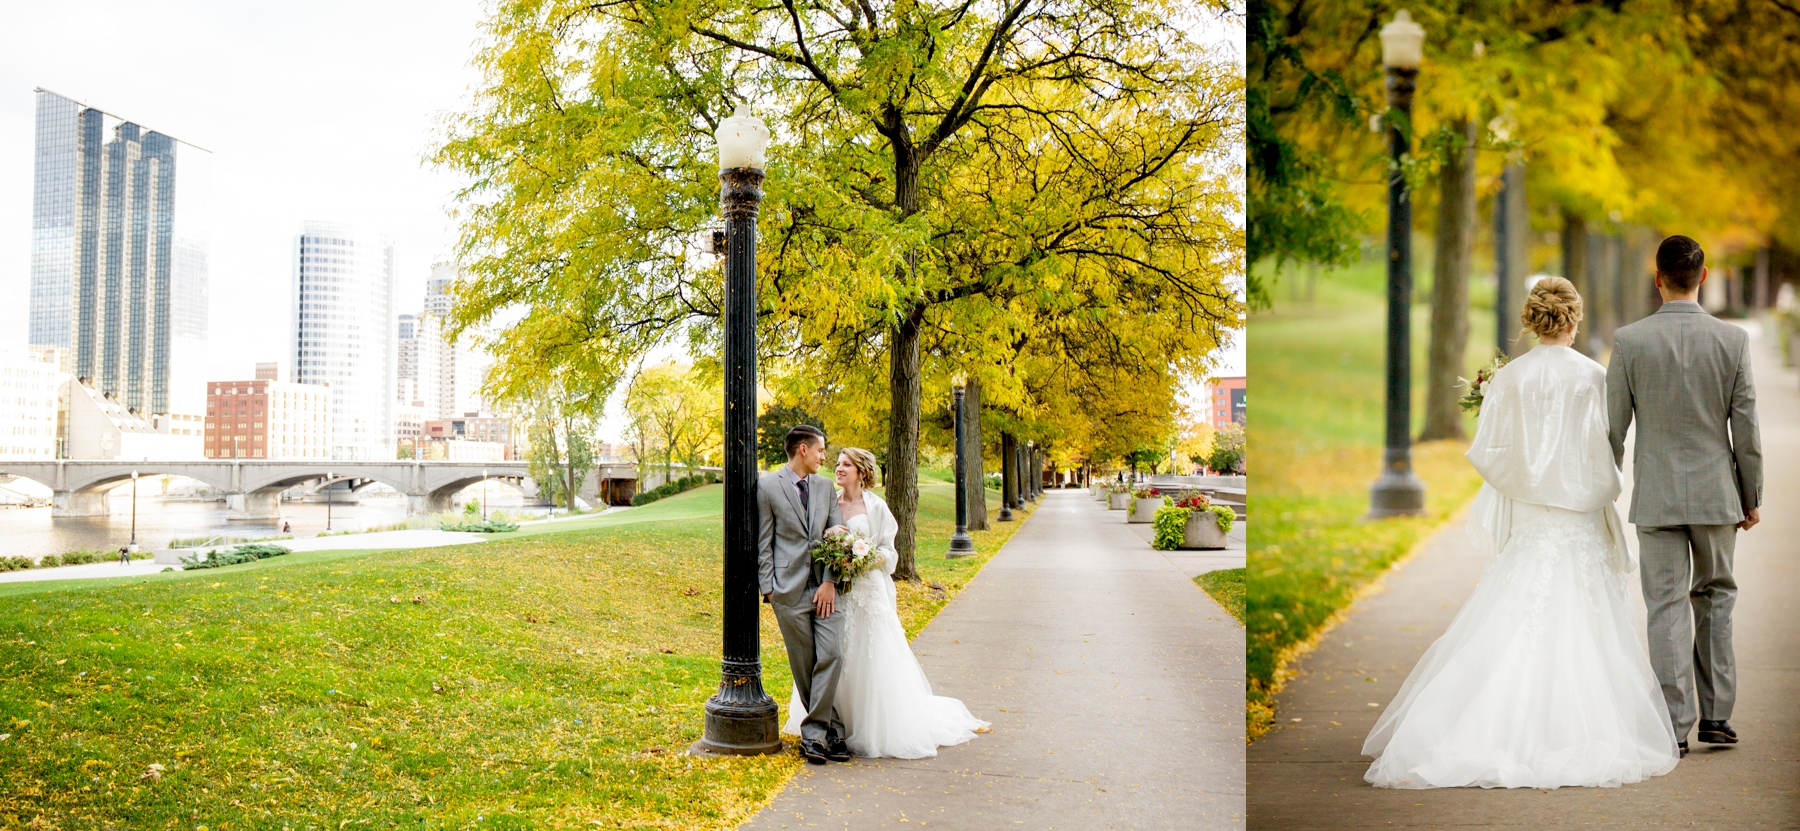 Brandon_Shafer_Photography_Kristen_Corey_Downtown_Grand_Rapids_Fall_Wedding0036.JPG